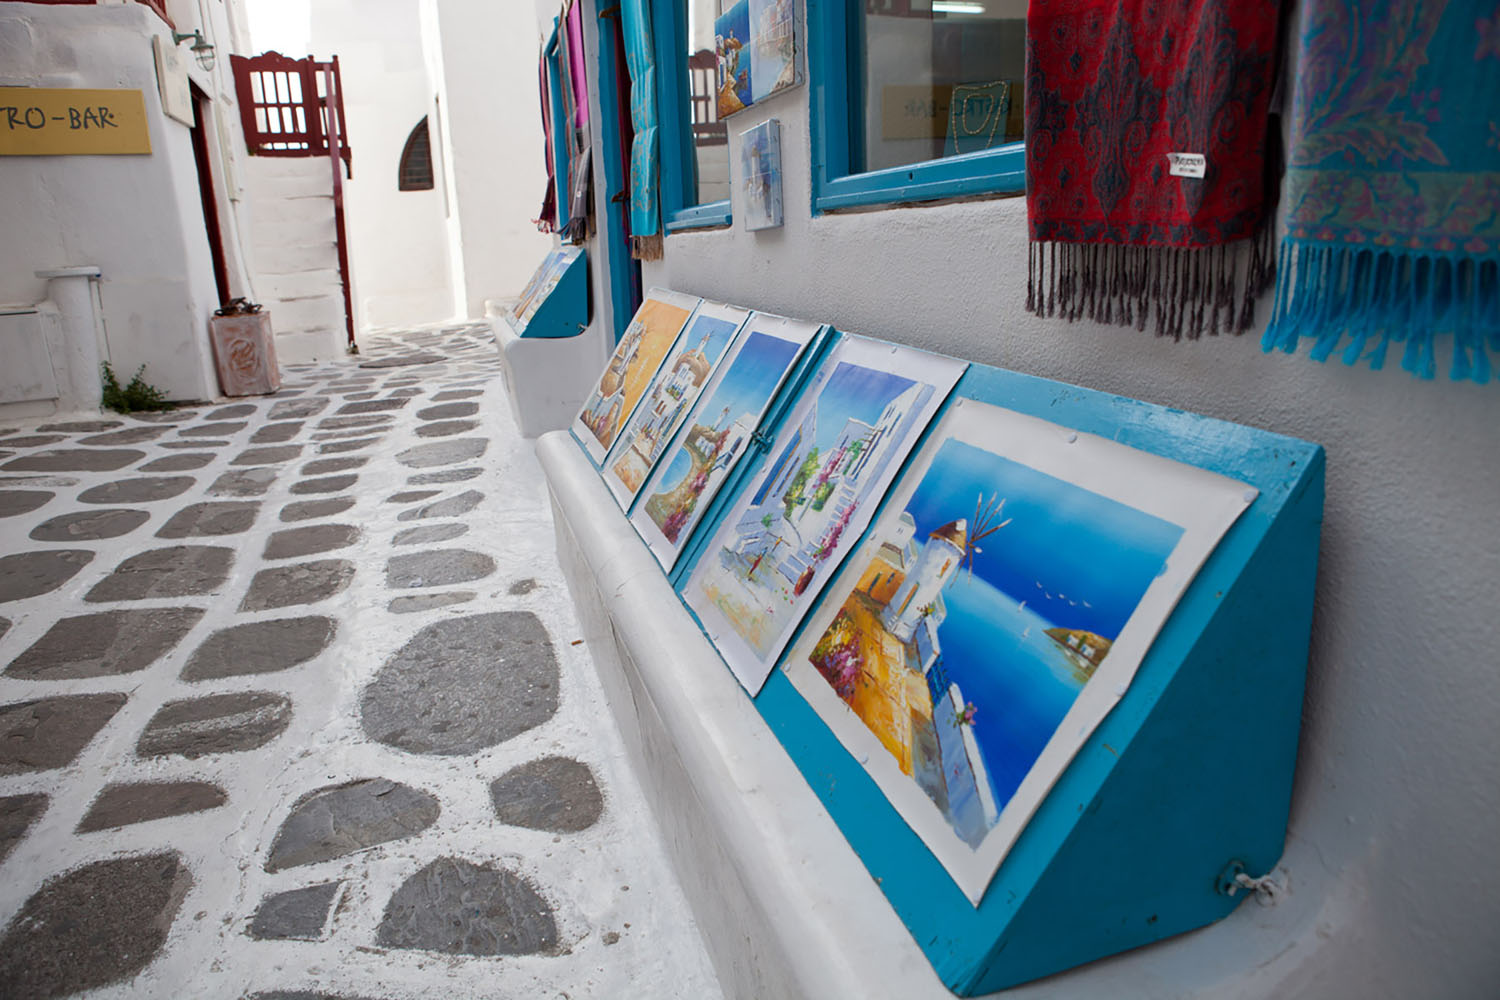 One of the best things to do in Mykonos is stroll the cobblestoned streets and shop for souvenirs.